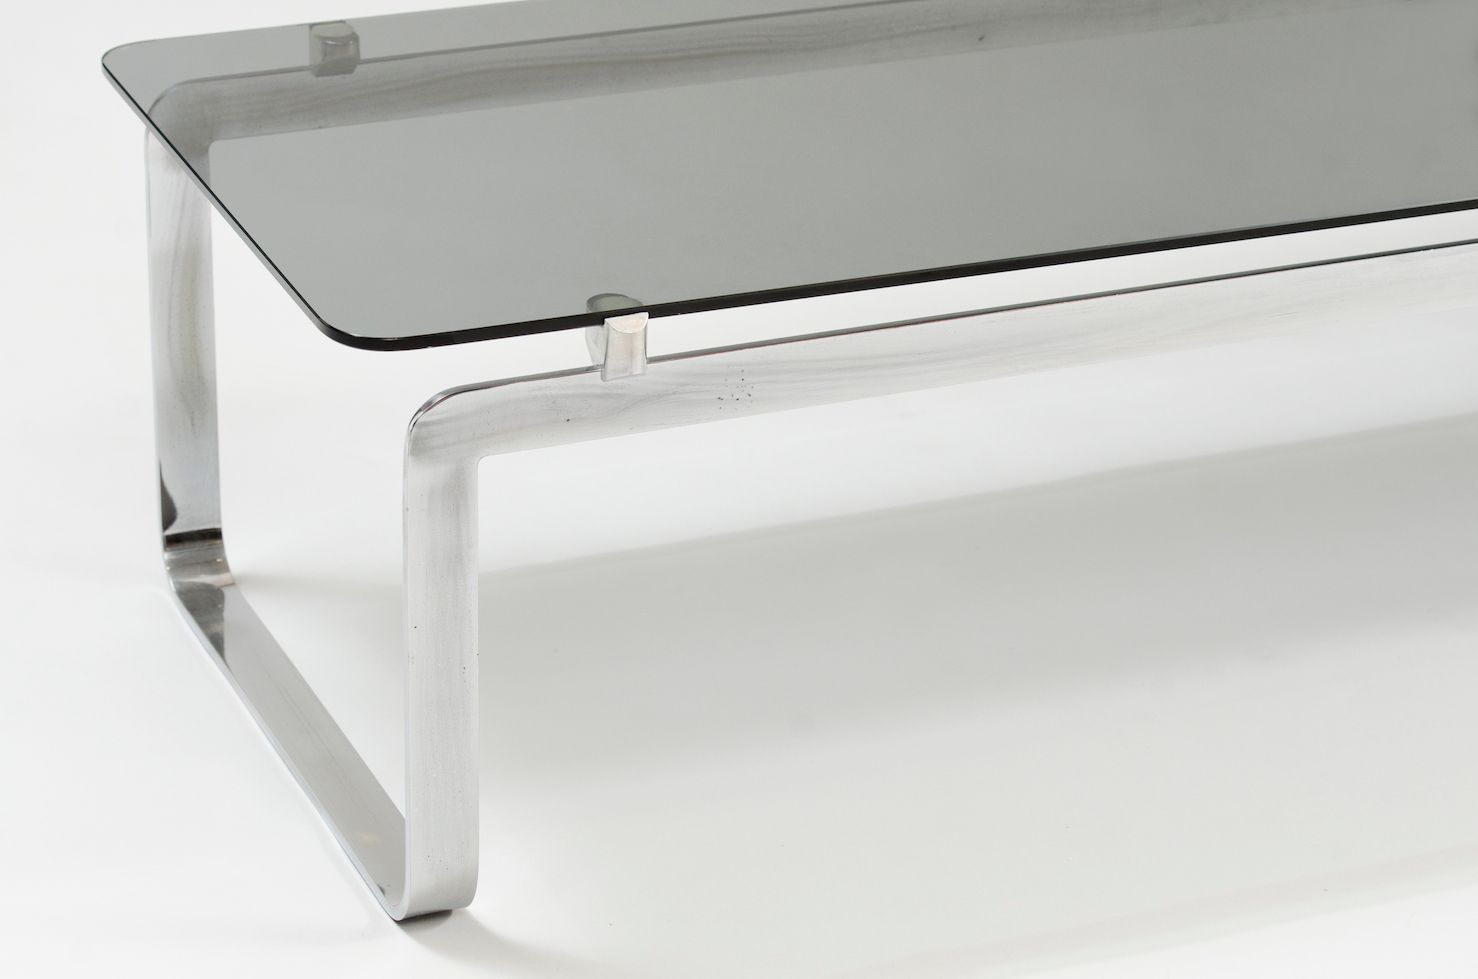 Italian Coffee Table In Chrome And Smoked Glass For Sale. Bar Height Dining Table Set. Glass Drawer Knobs. Ksu It Help Desk. Herman Miller Office Desks. Multifunctional Coffee Table. Modular Reception Desk. Inset Drawer Slides. Document Storage Drawers